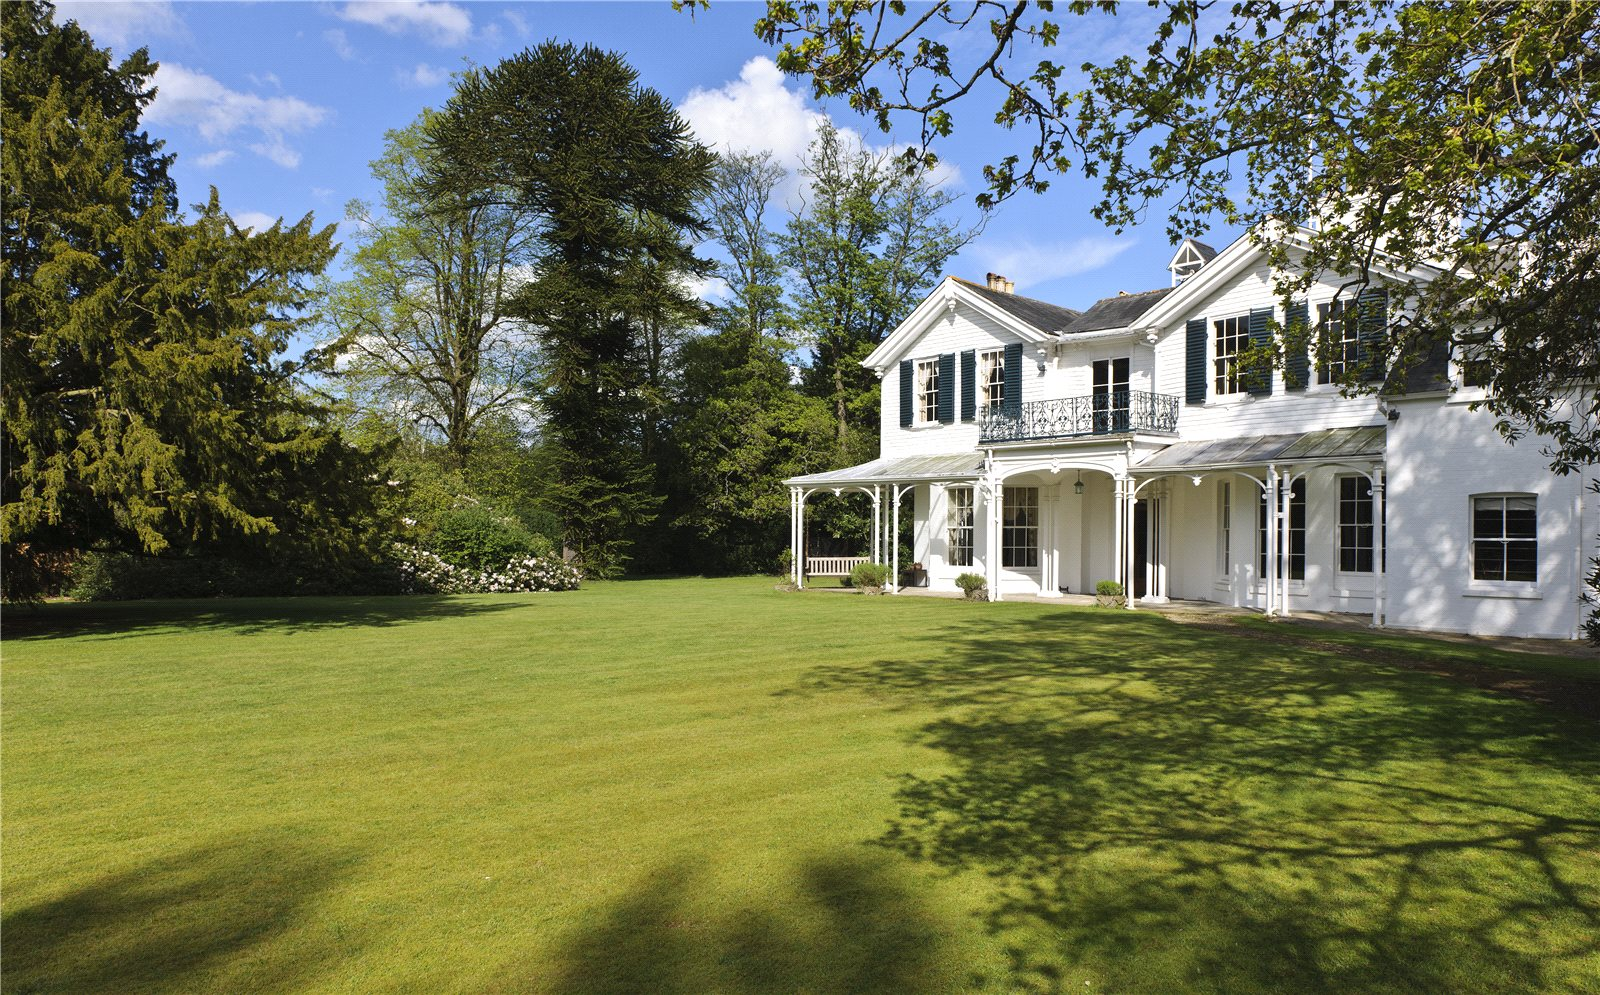 Villa per Vendita alle ore The Green, Langton Green, Tunbridge Wells, Kent, TN3 Tunbridge Wells, Inghilterra